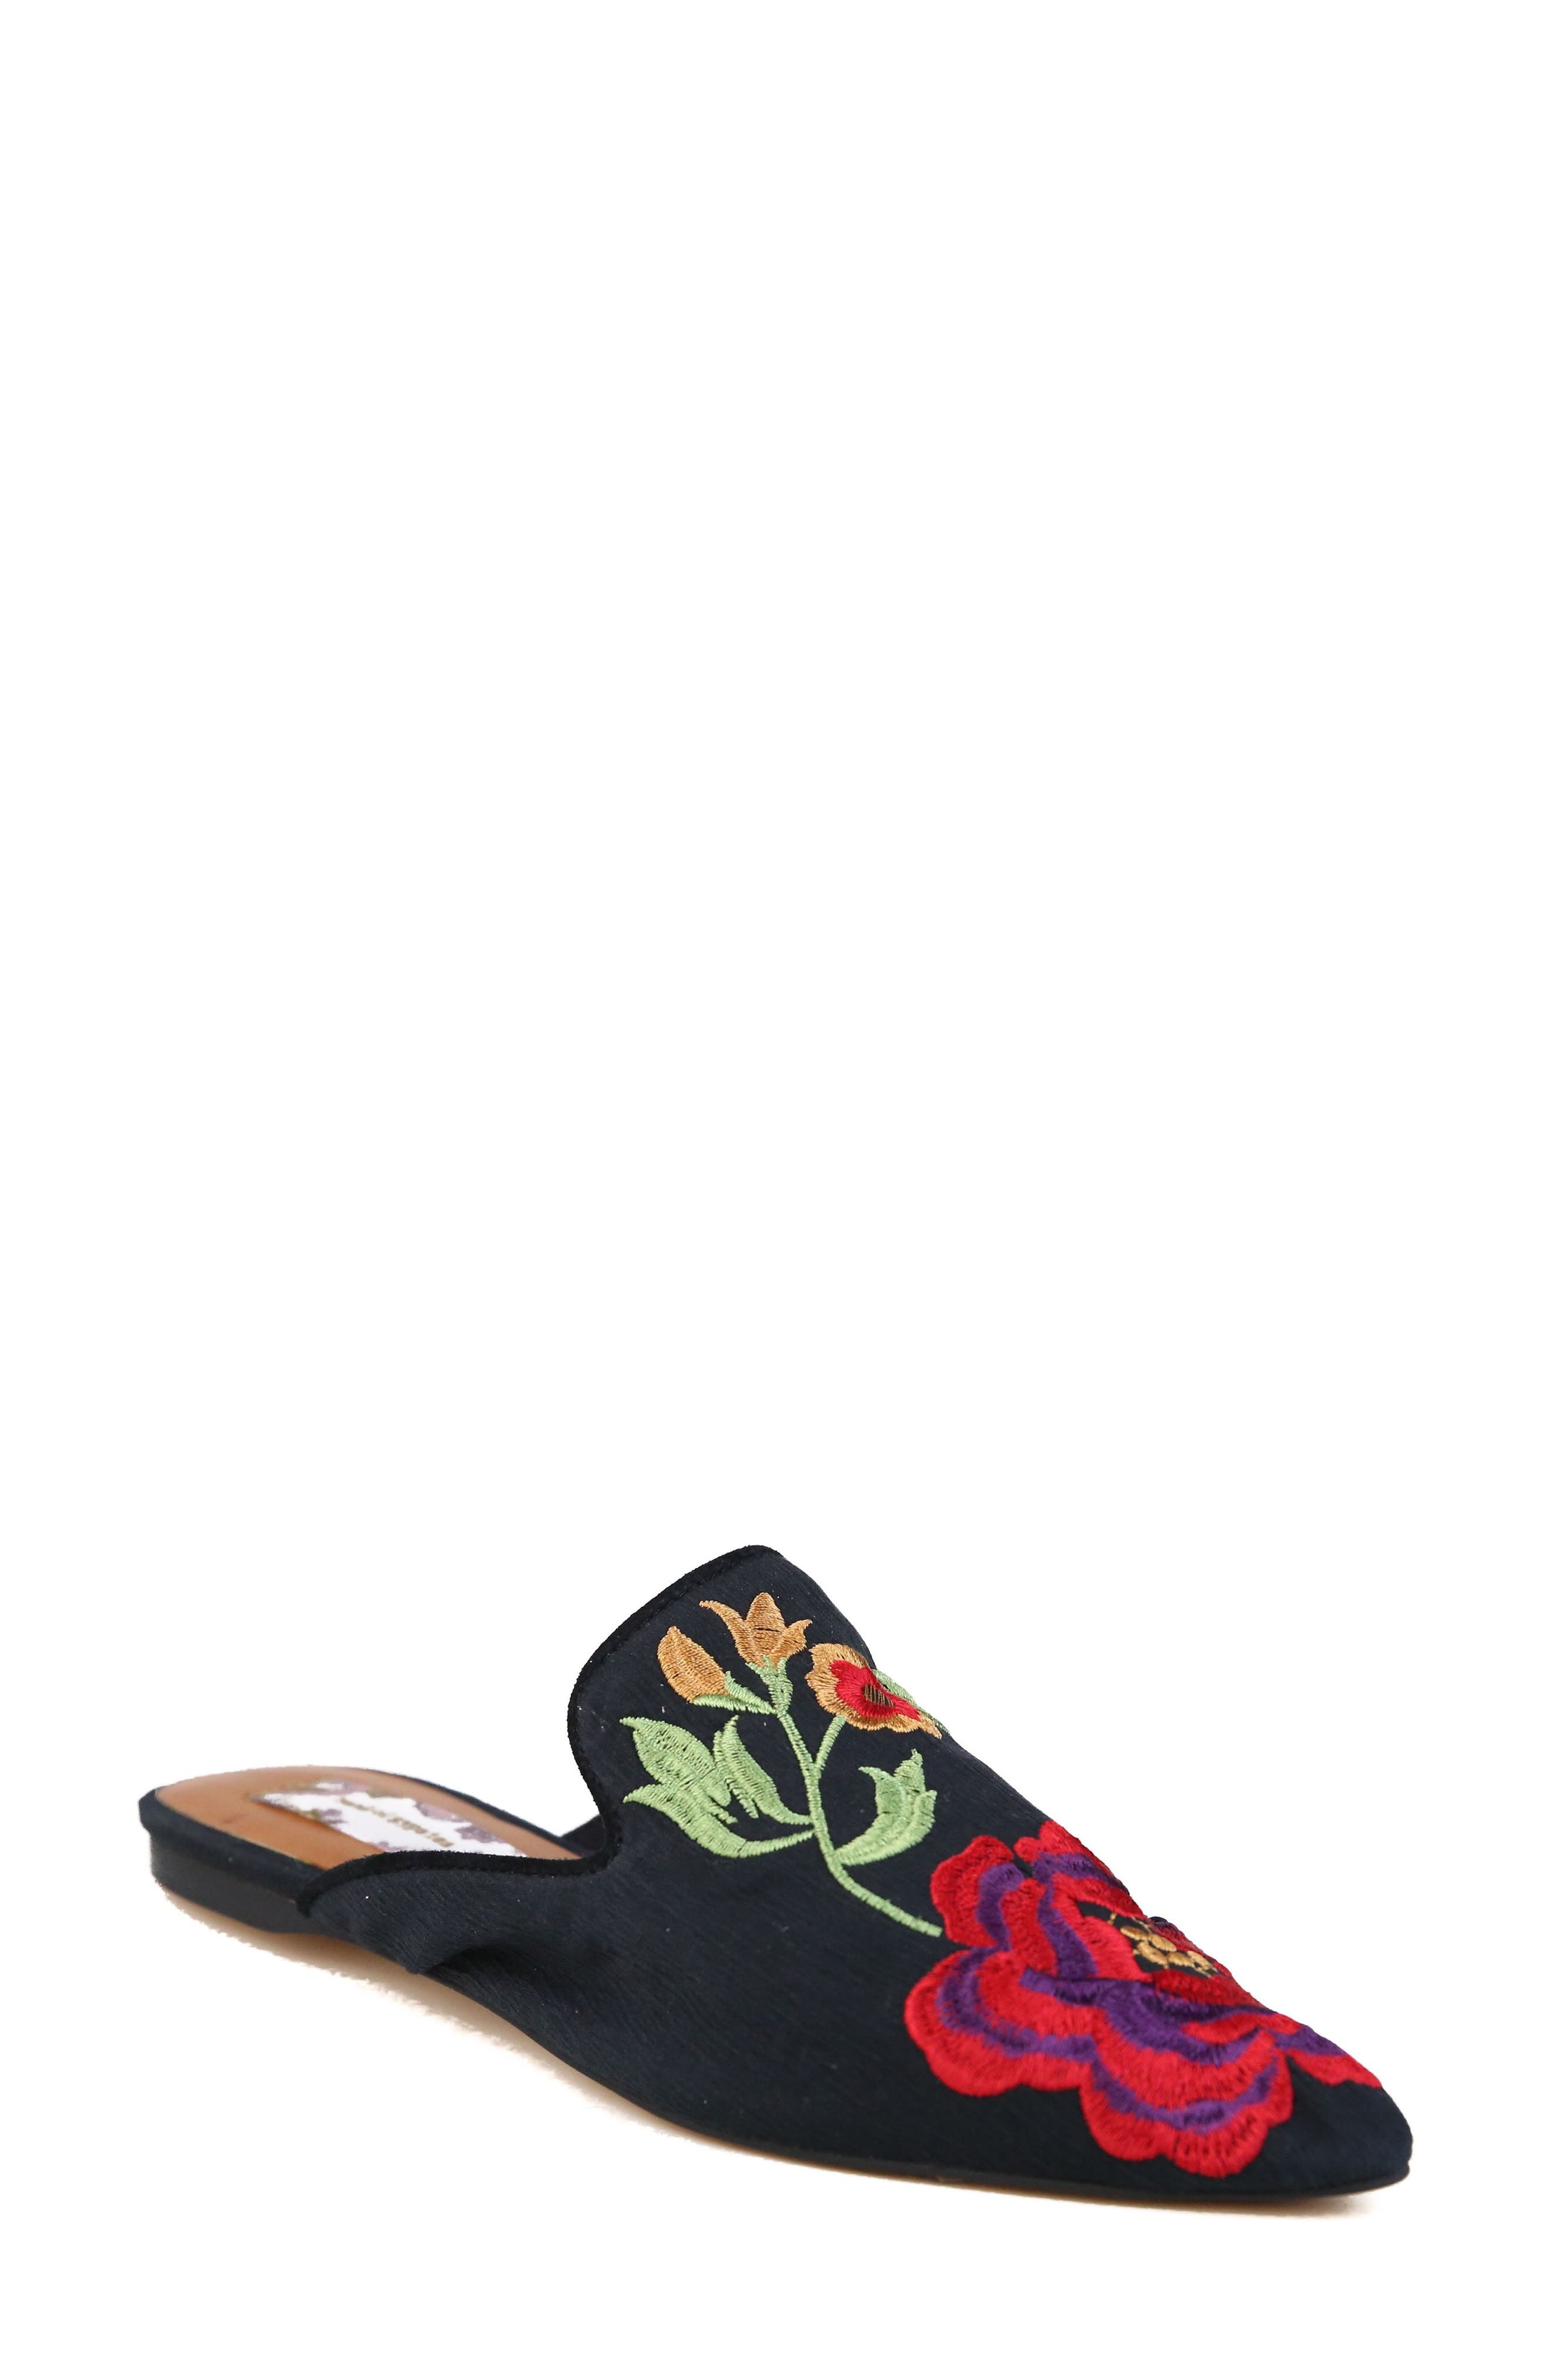 BAND OF GYPSIES Landslide Embroidered Mule Flat, Main, color, 001